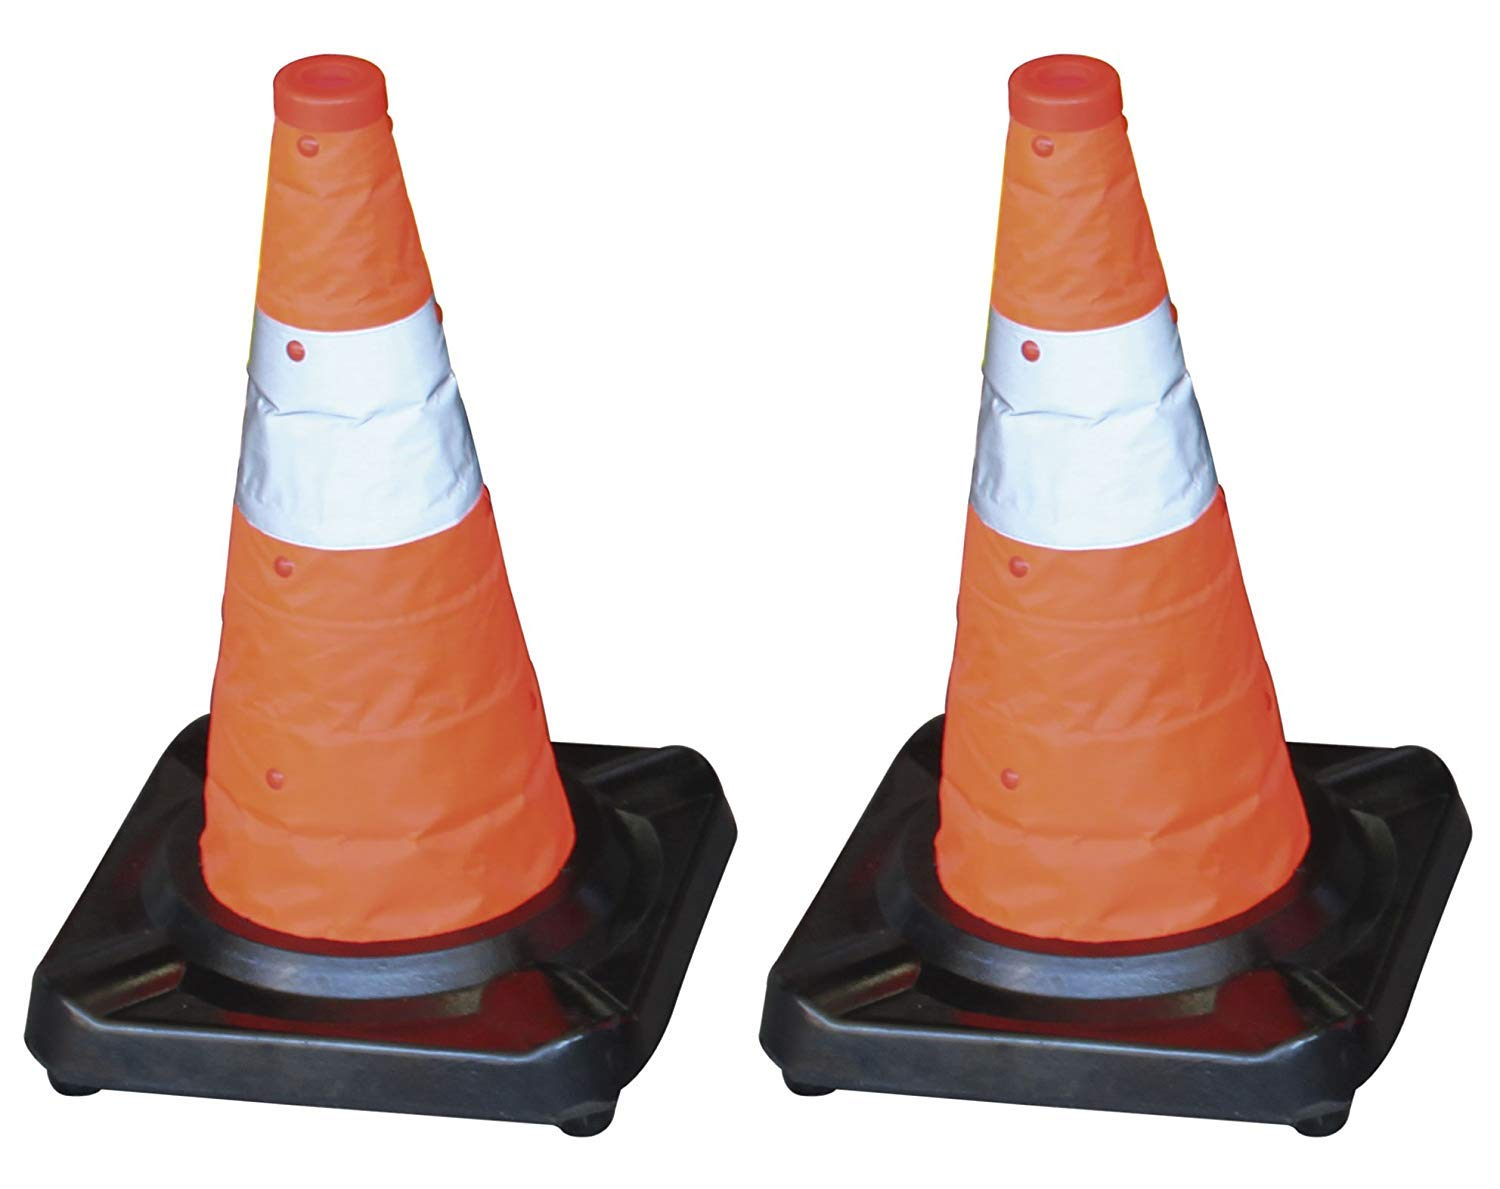 PAL – Set of 2 Folding Cones Rubber Base + Reflective Fabric 45 cm Height